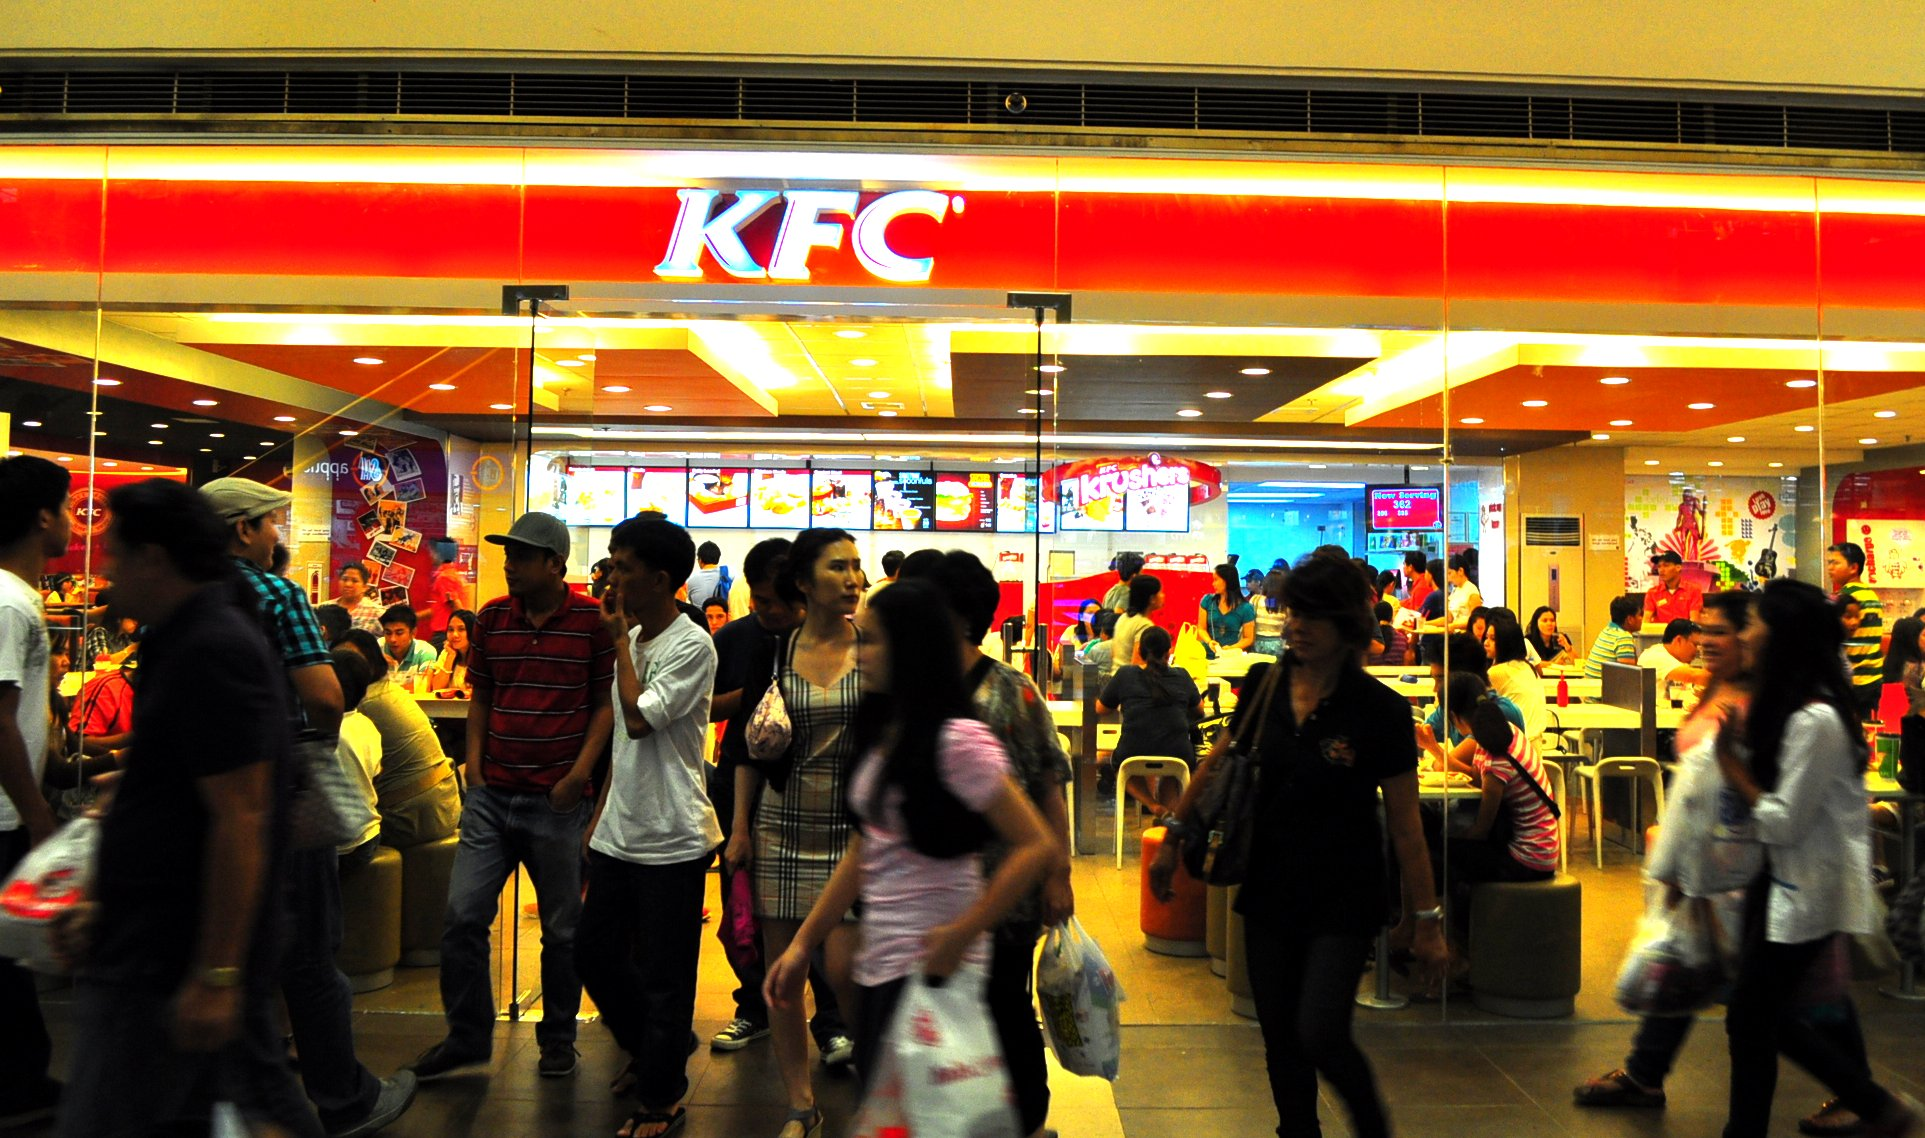 KFC Malaysia shows support for International Women's Day